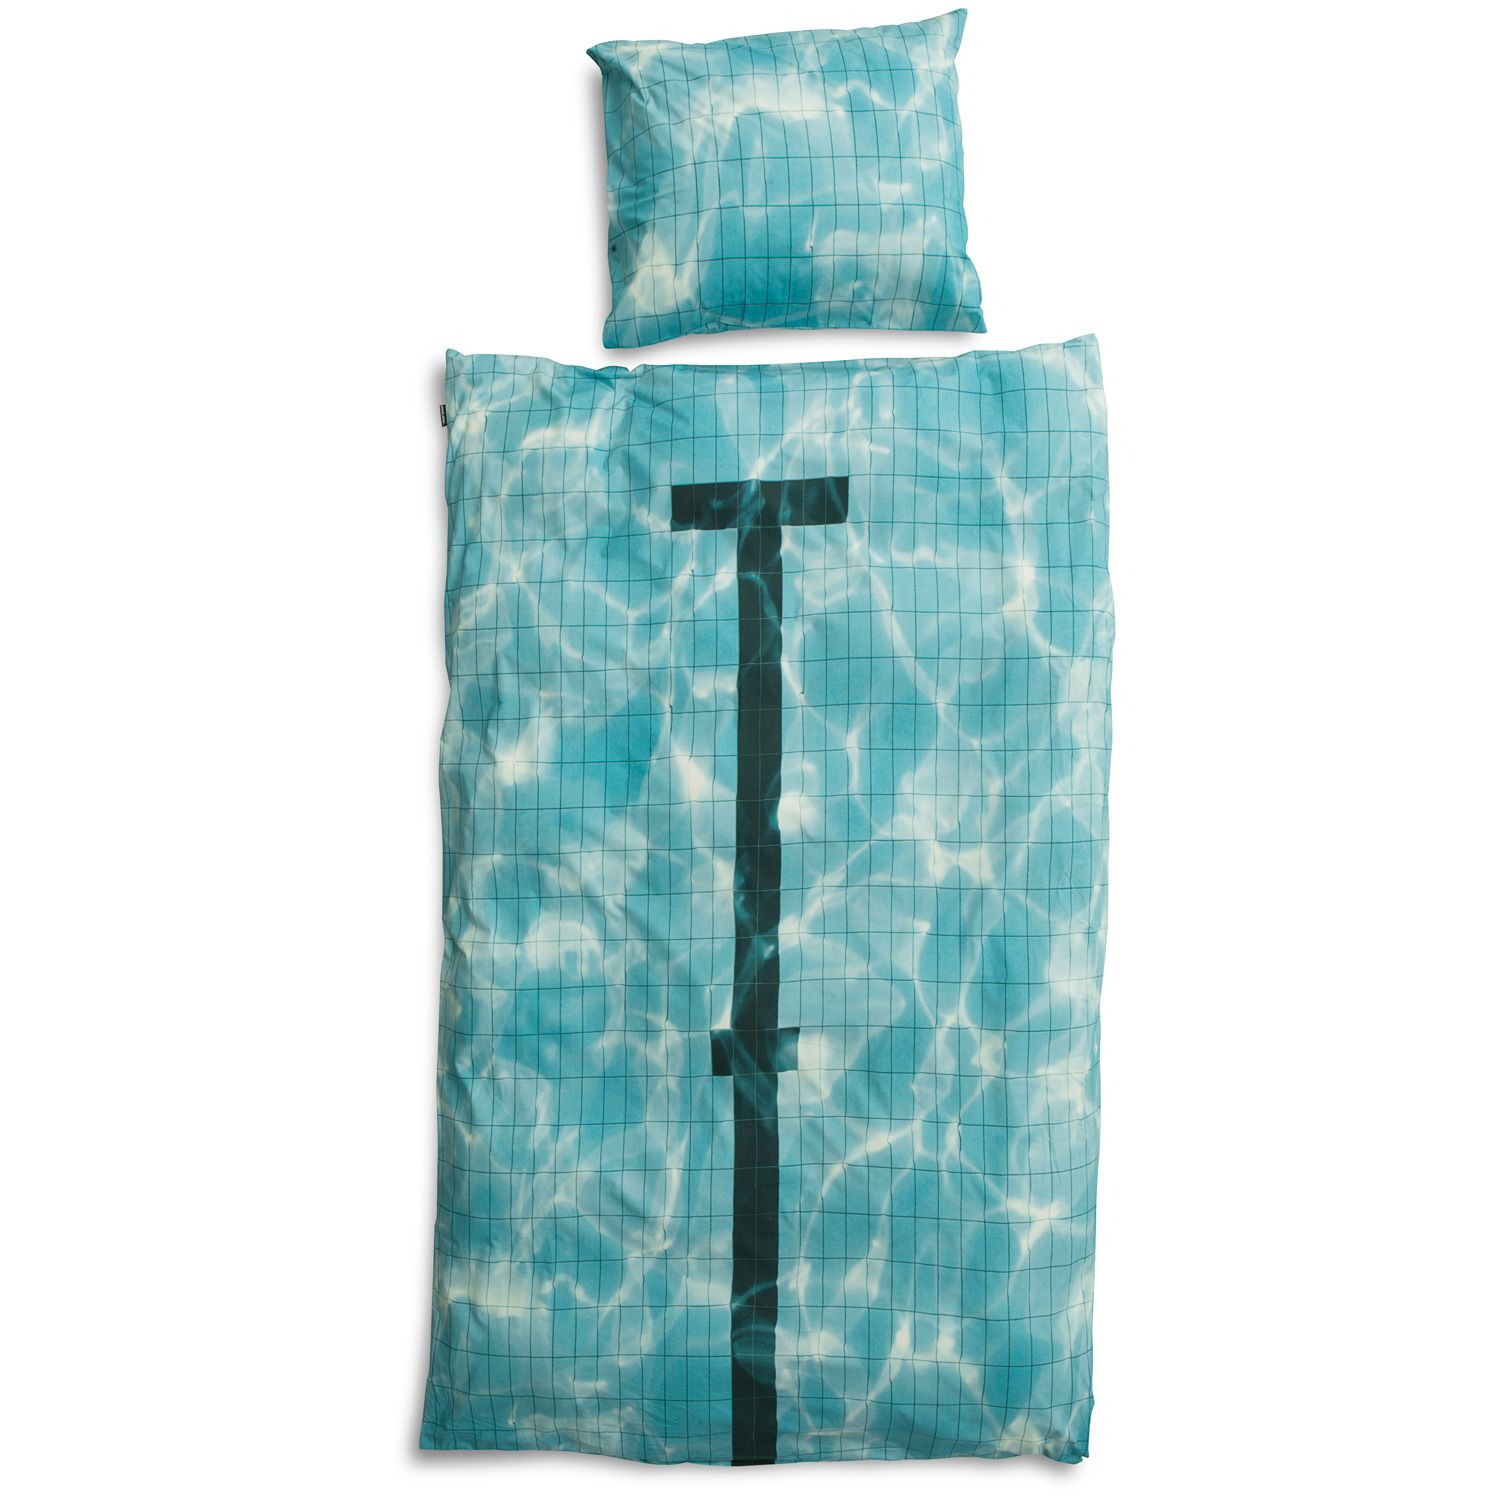 Pool Bedding By Snurk Duvet Covers Cover Pillow Quilt Linen